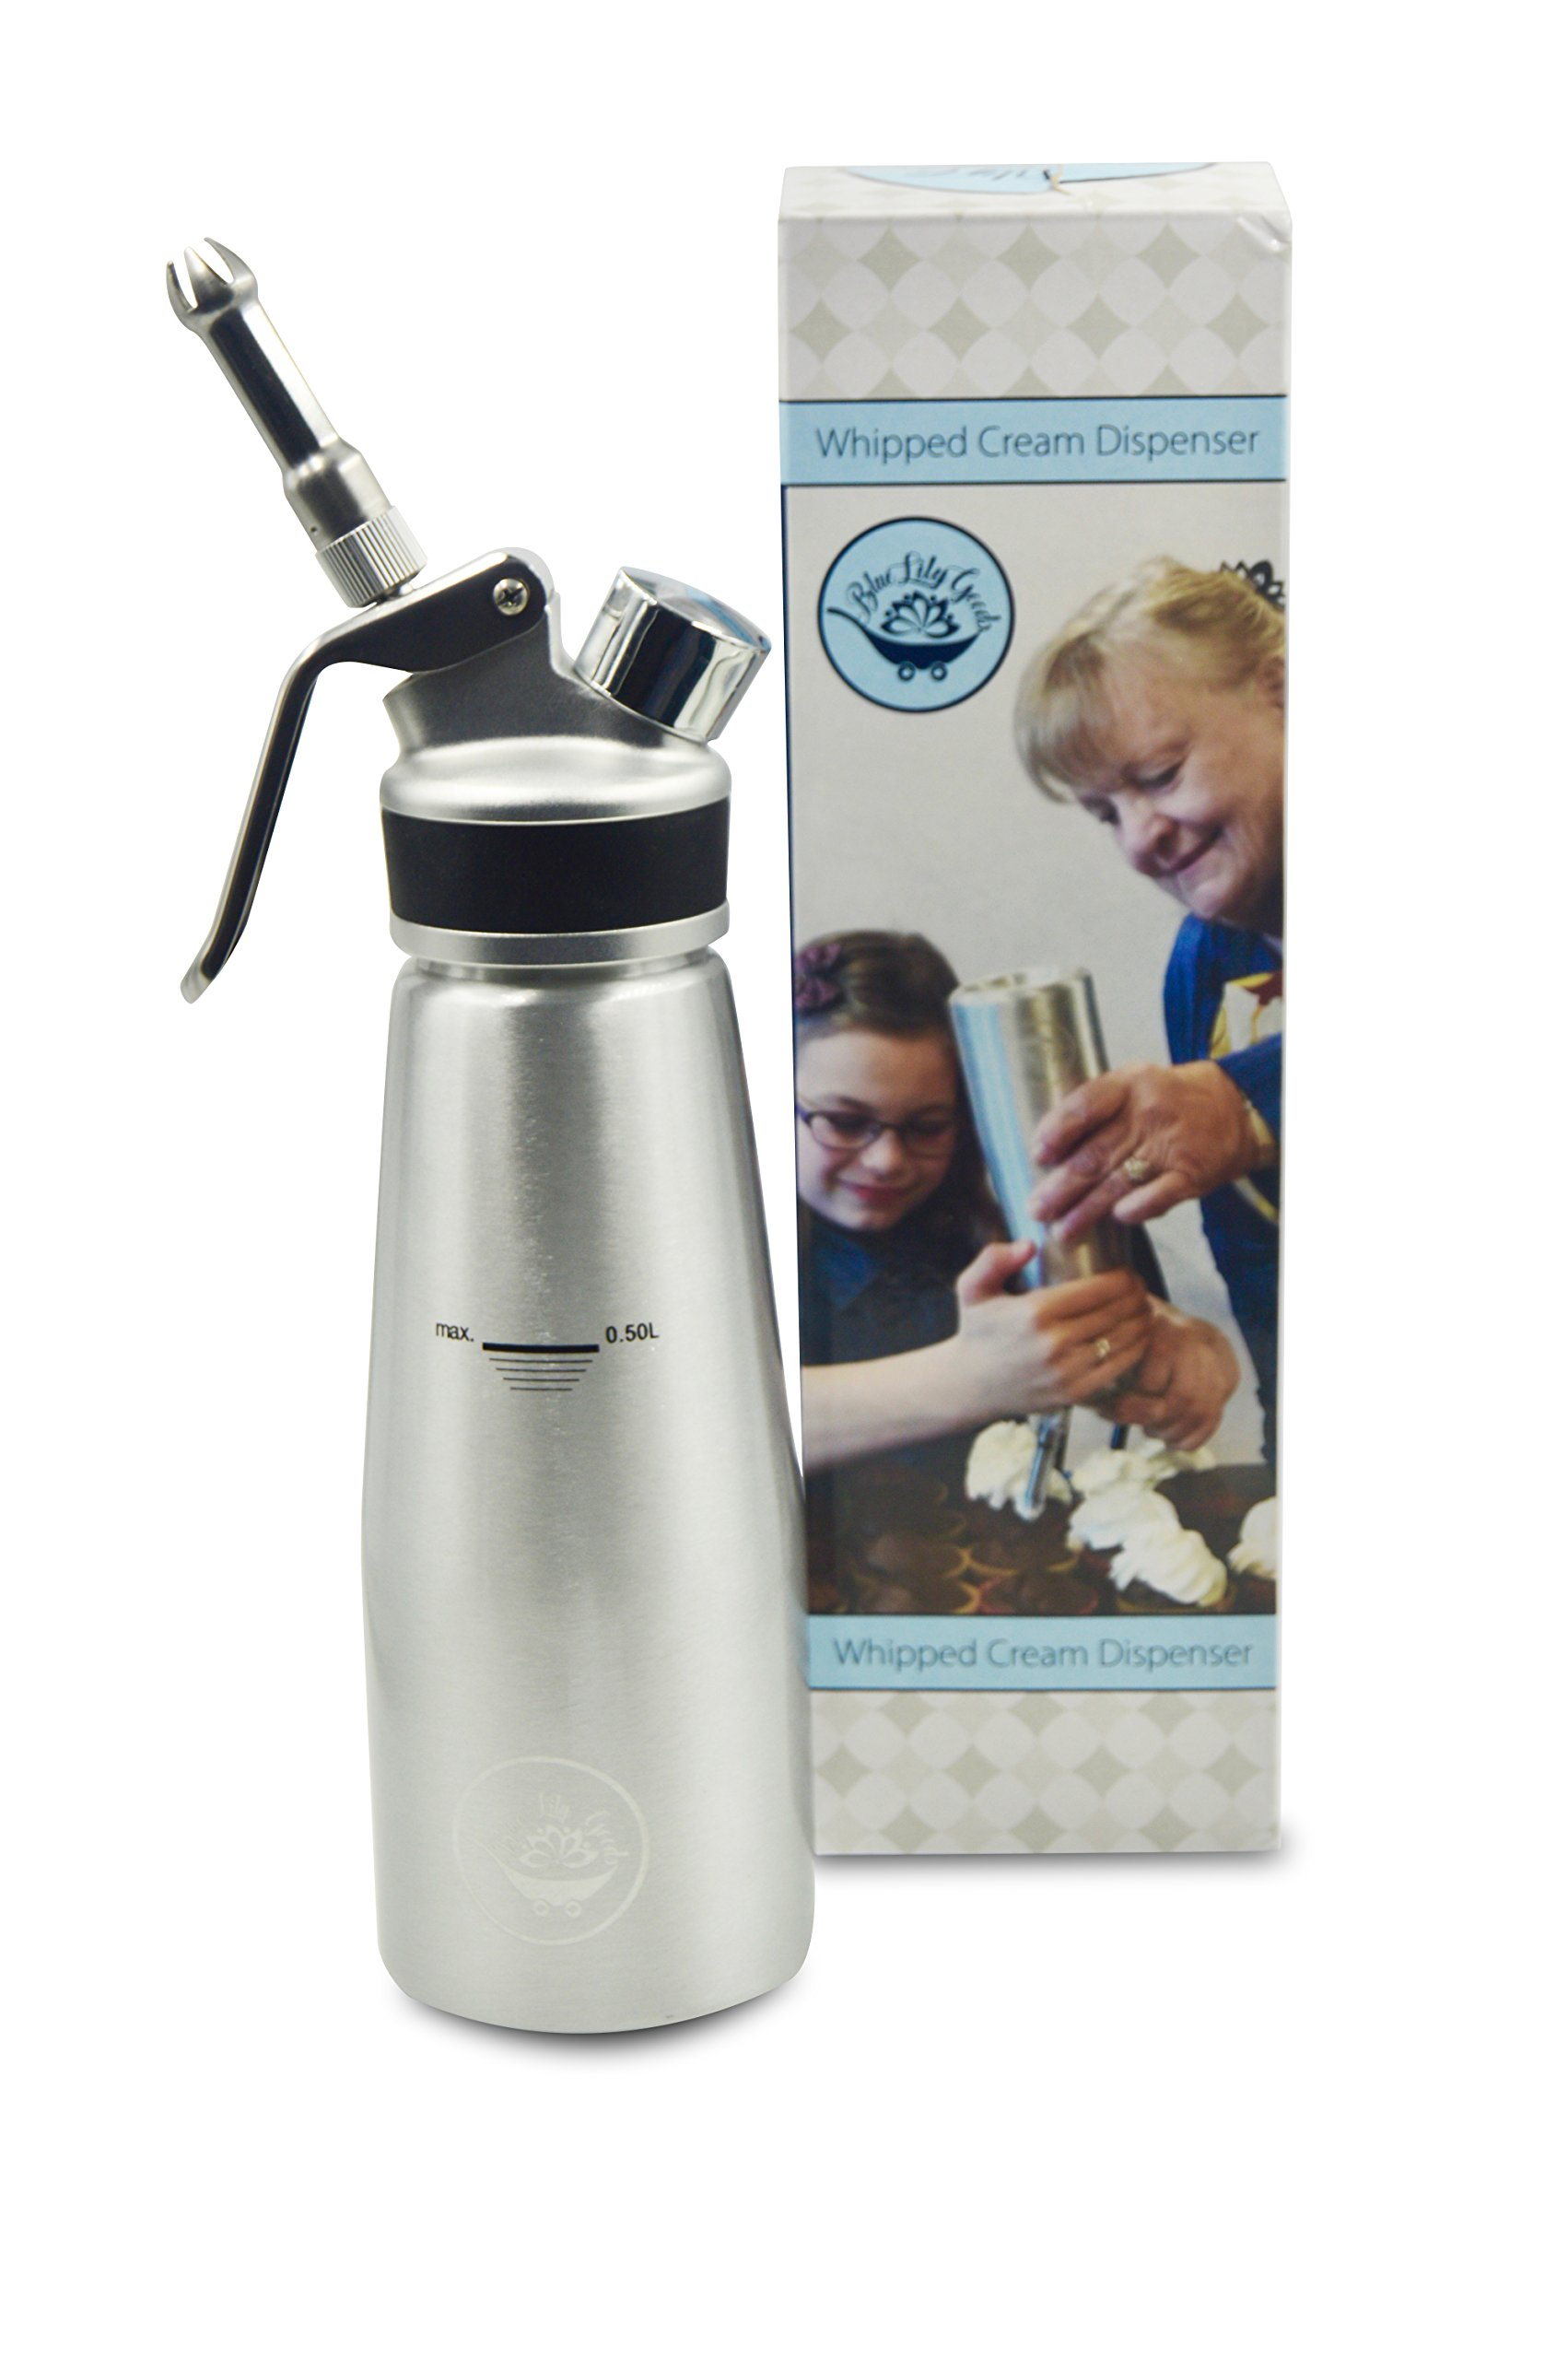 Whipped Cream Dispenser Makes Professional Whipping Cream W/Leakproof Aluminum Canister and Upgraded Stainless Steel Tips - Use Standard N2O Whip Cream Chargers (not included)